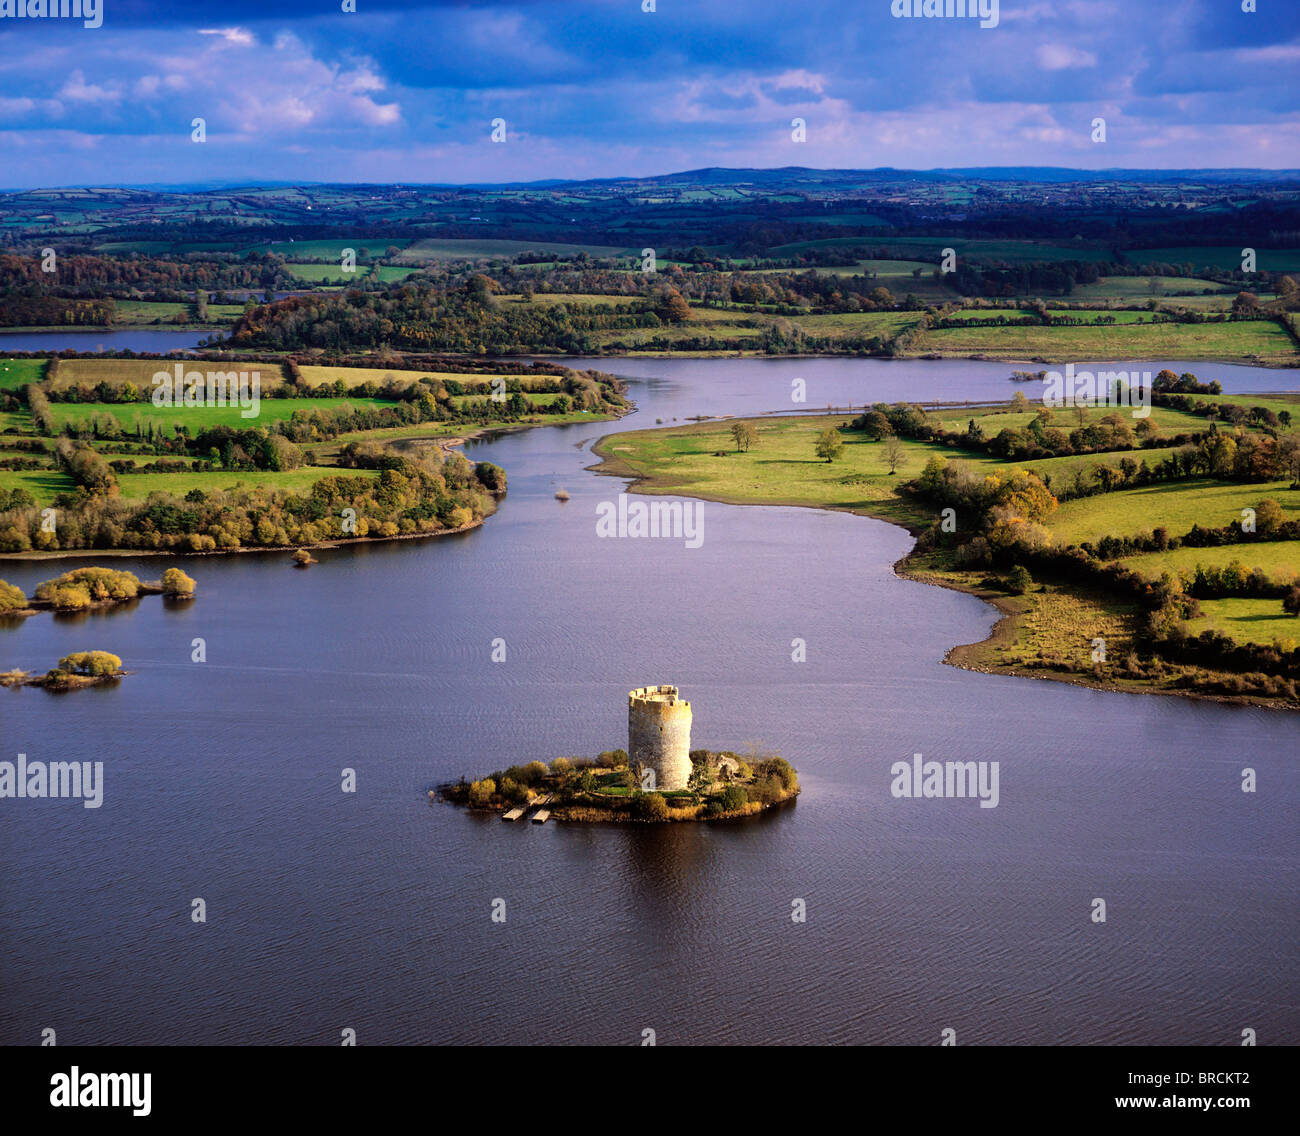 Co Cavan, Ireland; Aerial View Of Lough Oughter And 13Th Century Cloughoughter Castle Built On The Possible Site - Stock Image